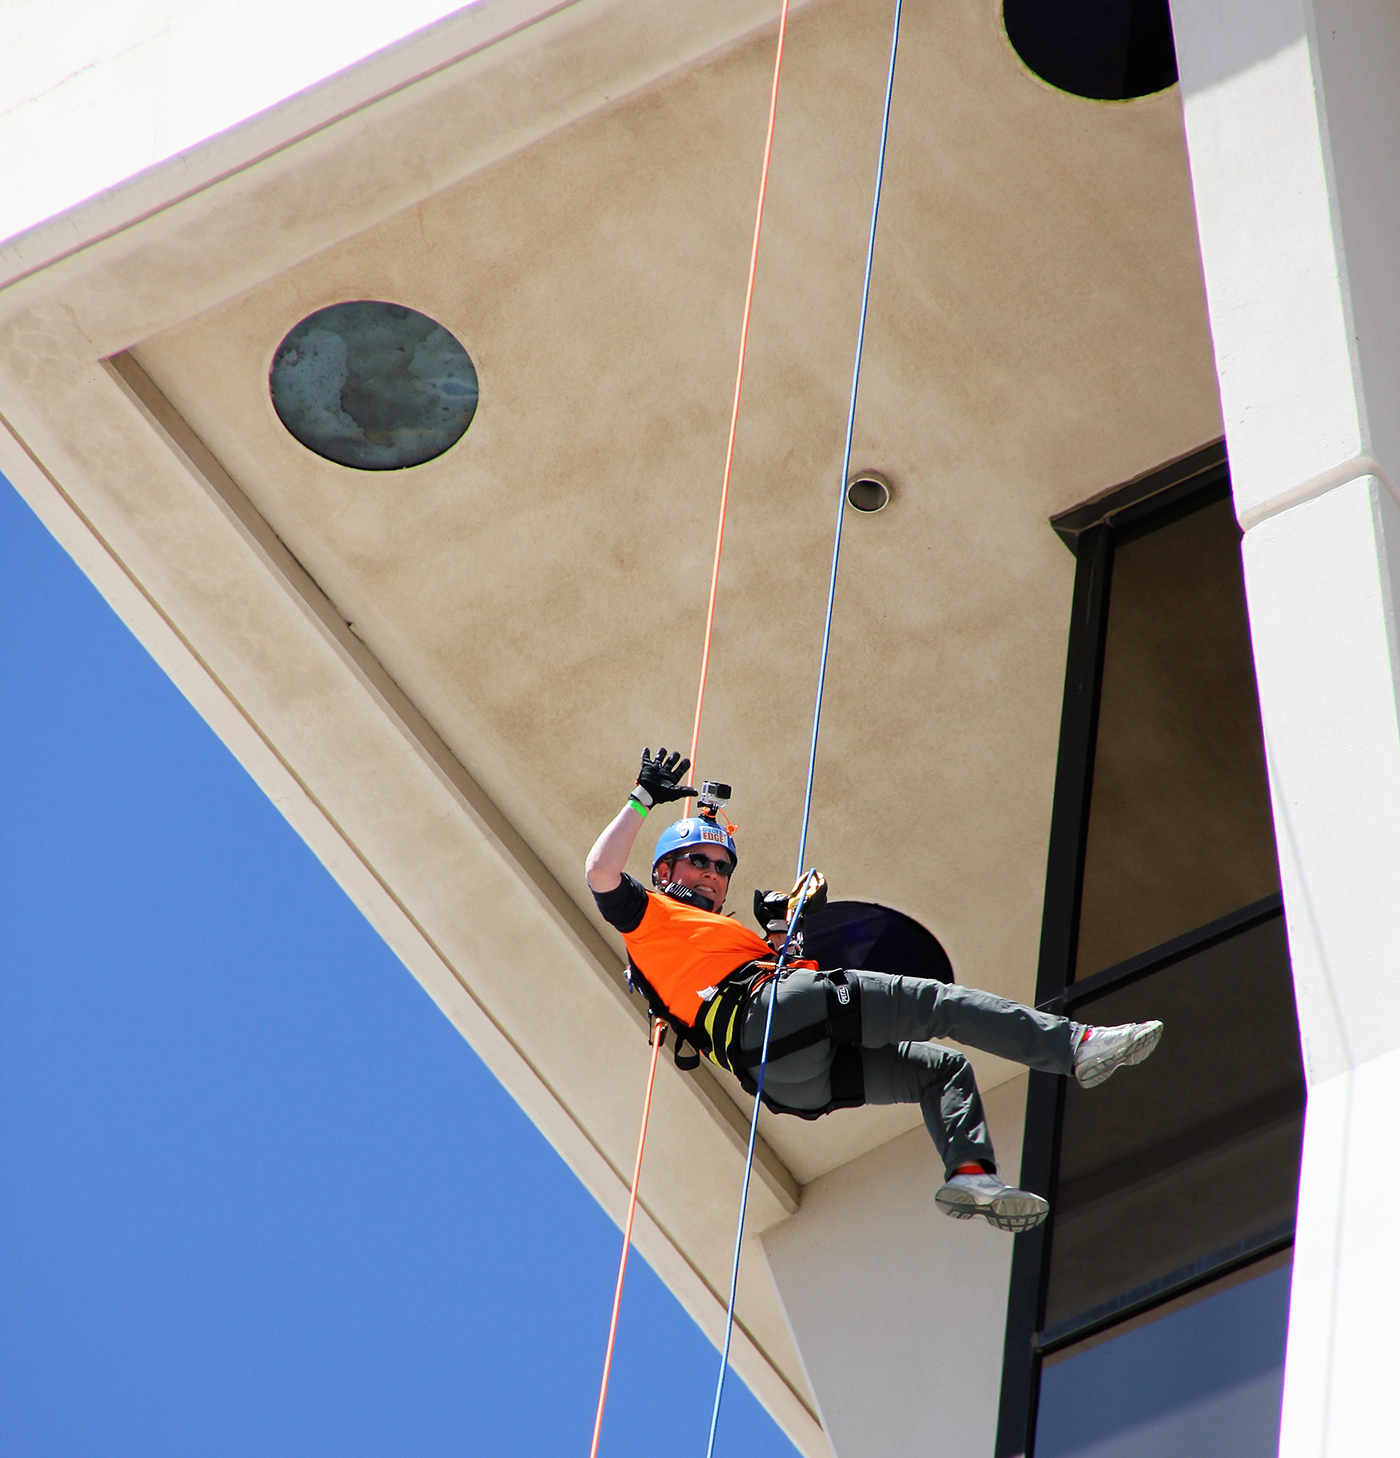 Underside of a building with a worker repelling down